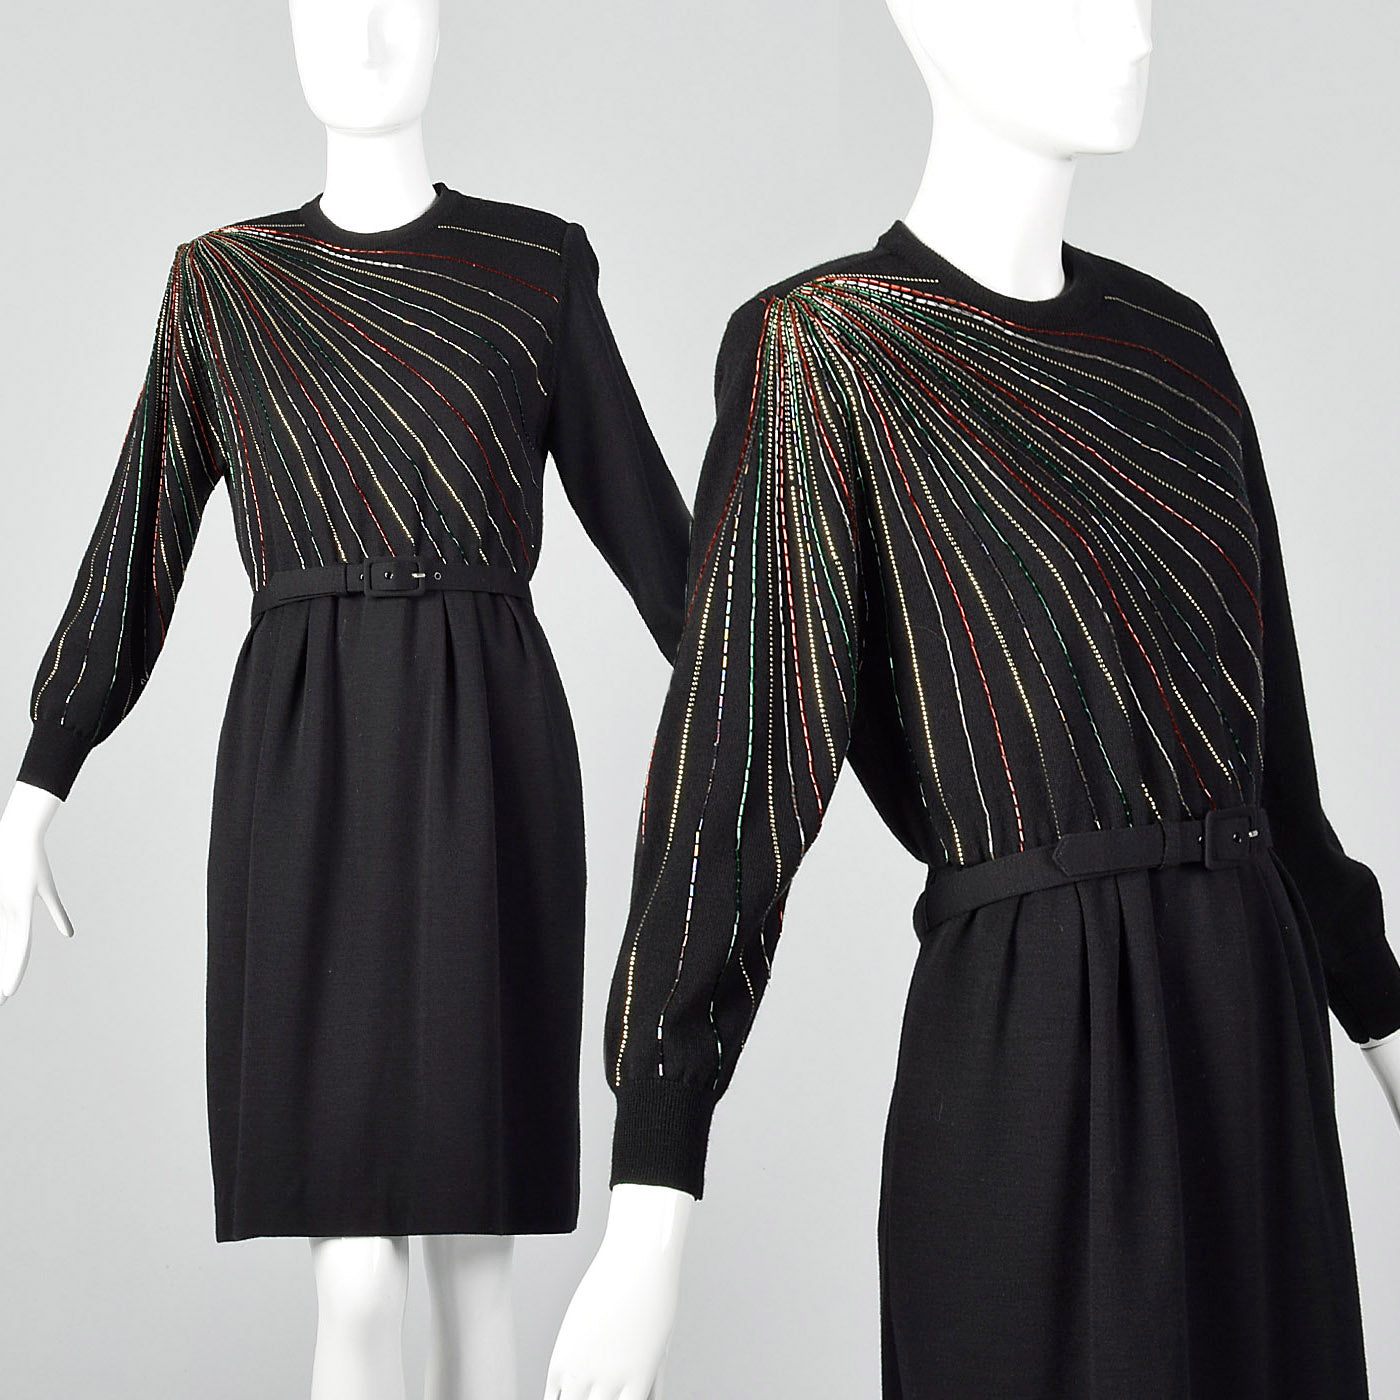 1980s Black Beaded Sweater Dress